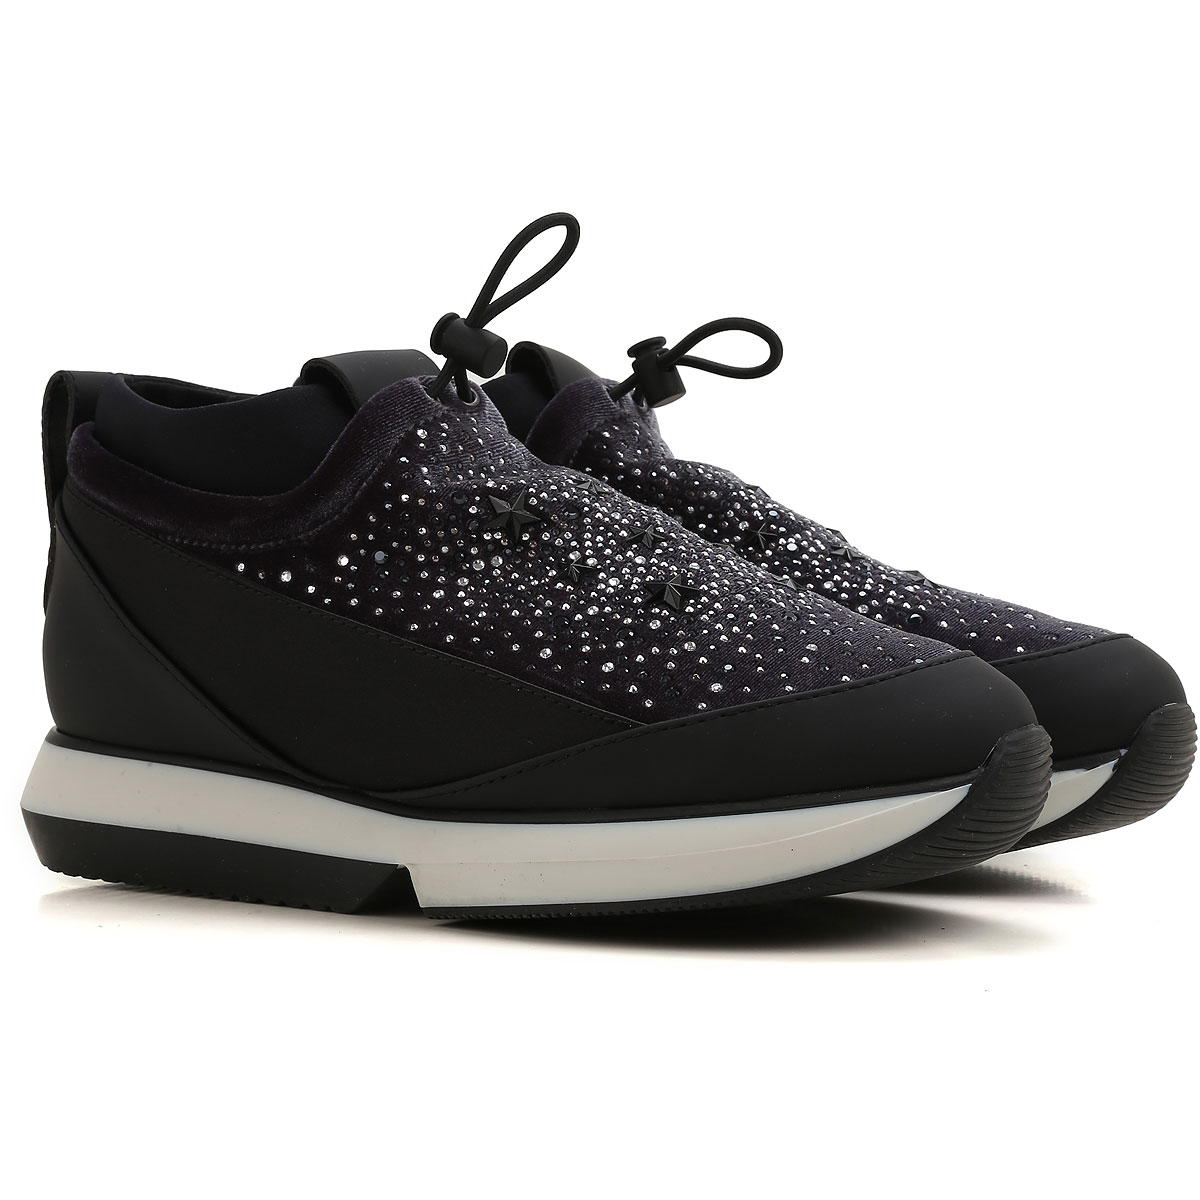 Image of Alexander Smith Sneakers for Women On Sale in Outlet, Grey, Leather, 2017, 6 8